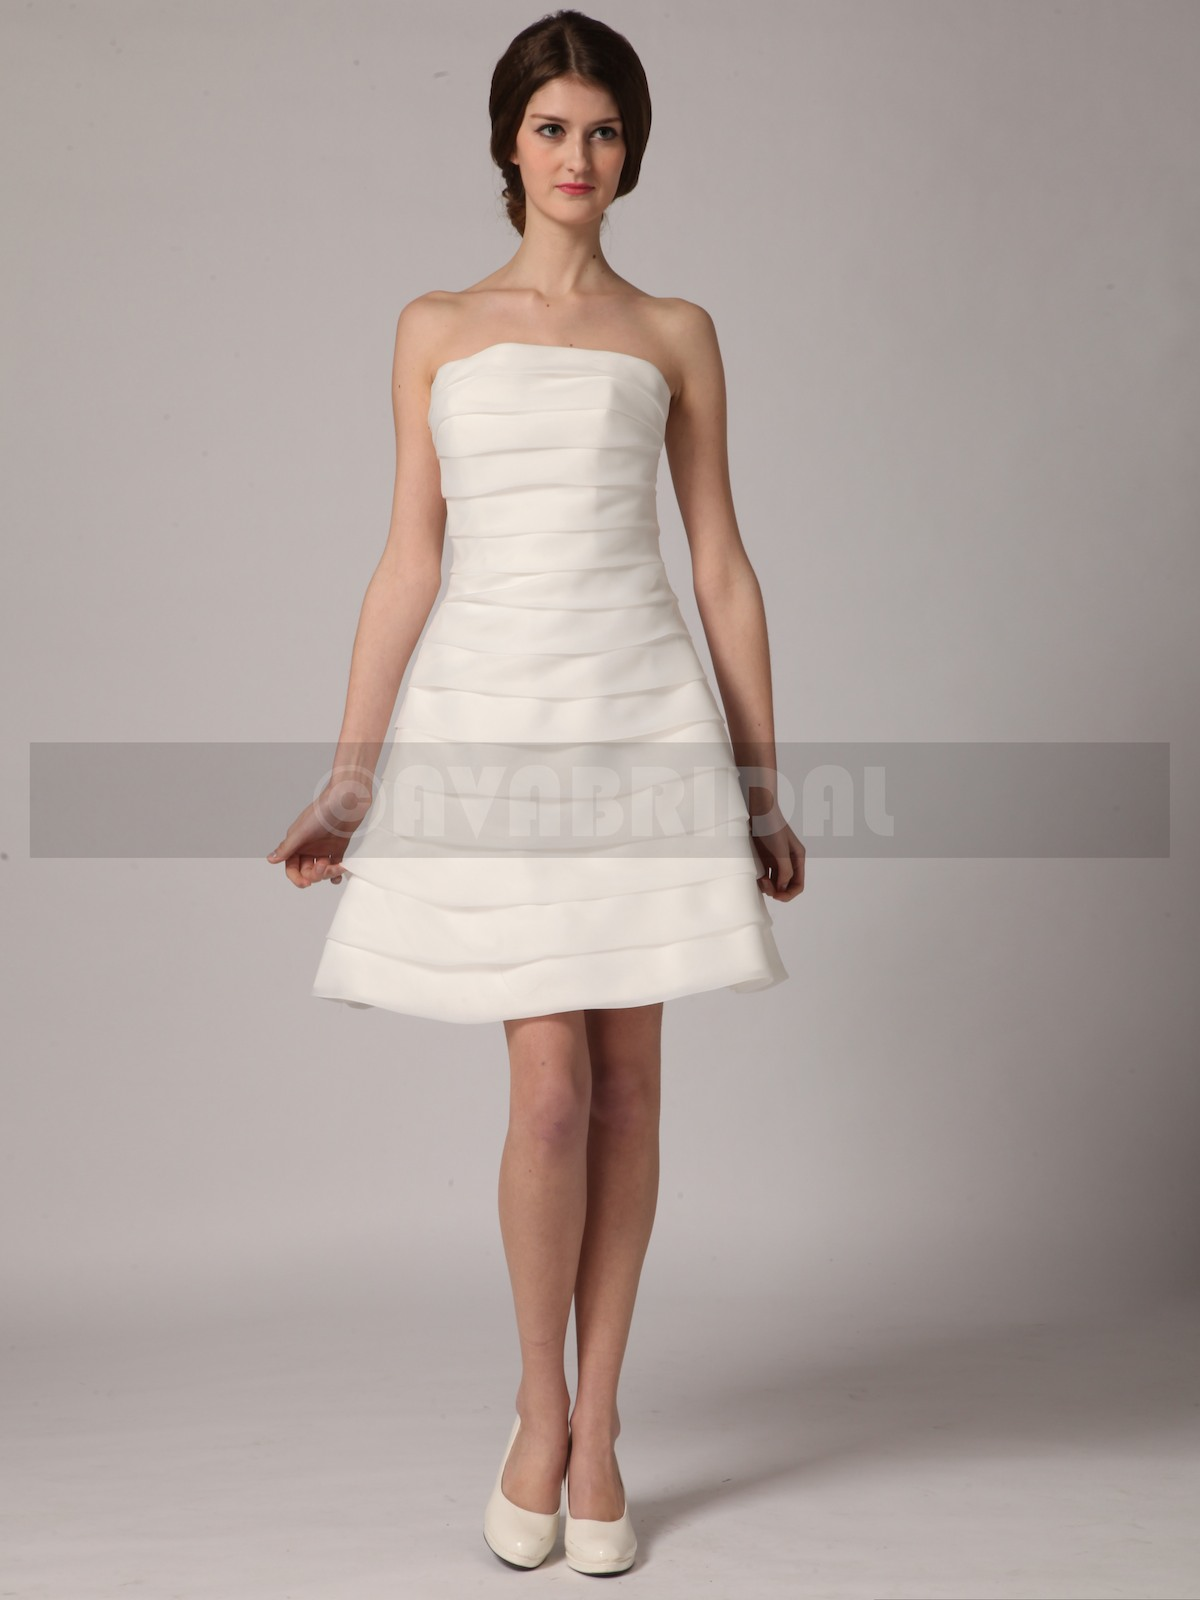 Short Sexy Wedding Dresses - Molly - Front